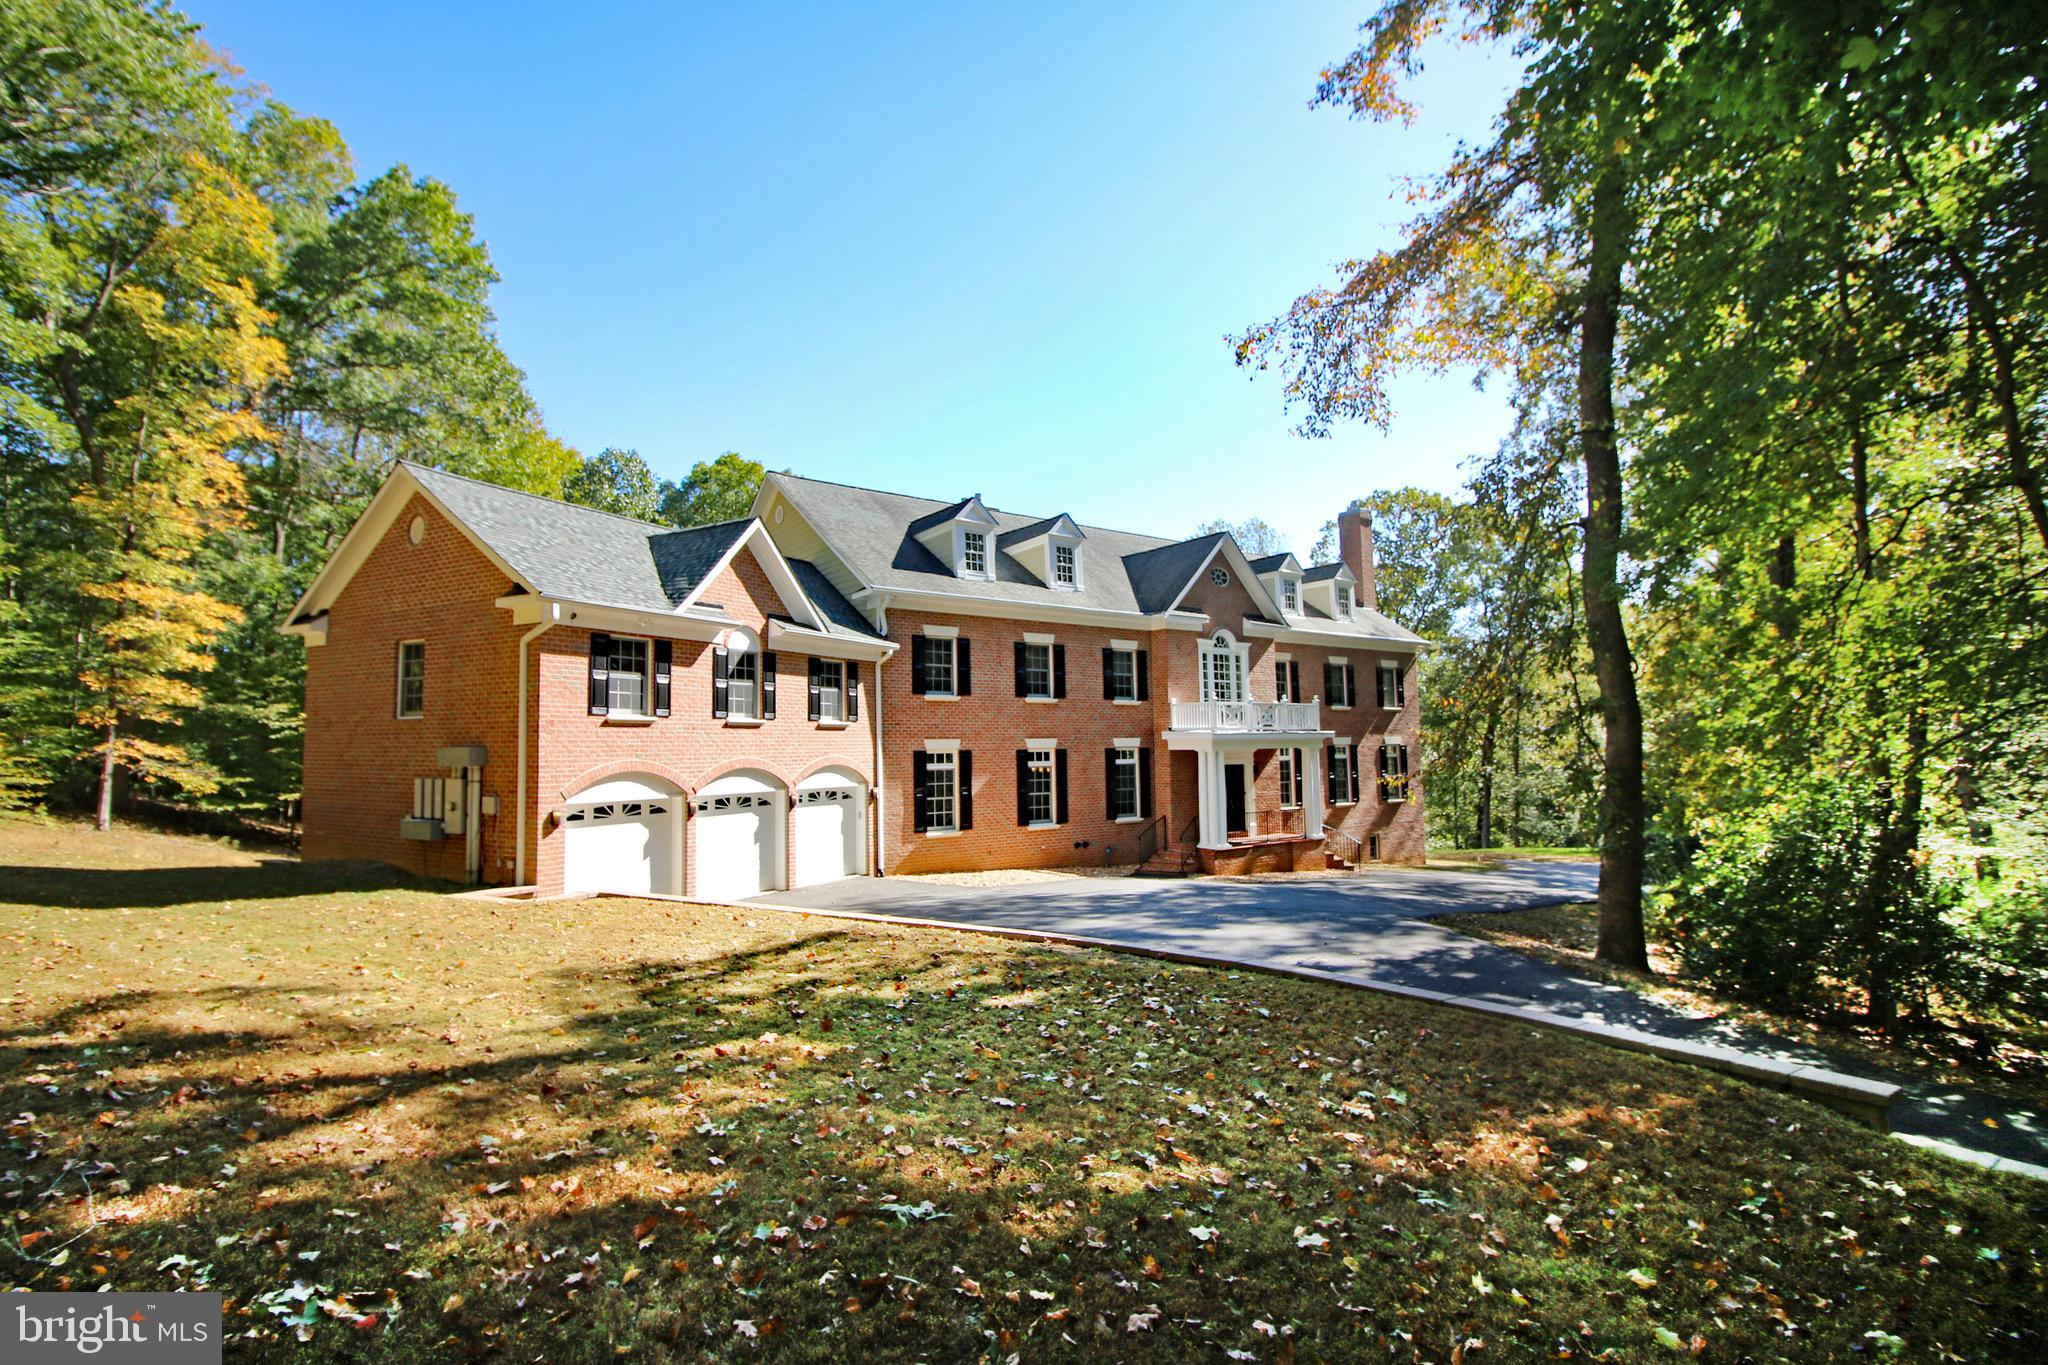 6321 WINDPATTERNS TRAIL, FAIRFAX STATION, VA 22039